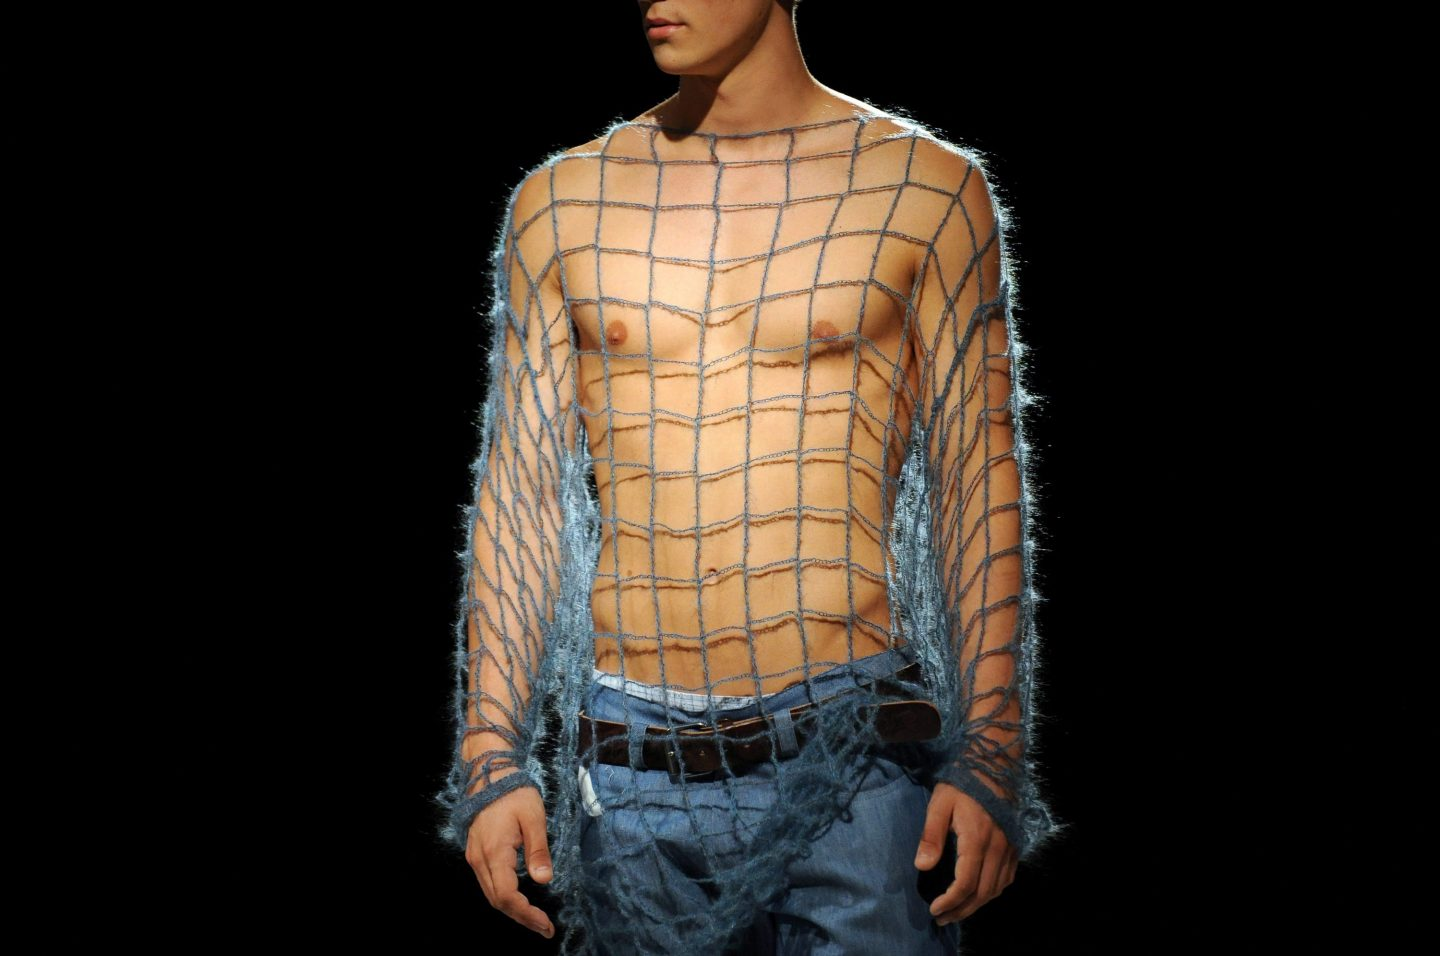 The male equivalent of Kate Middleton's fishnet dress